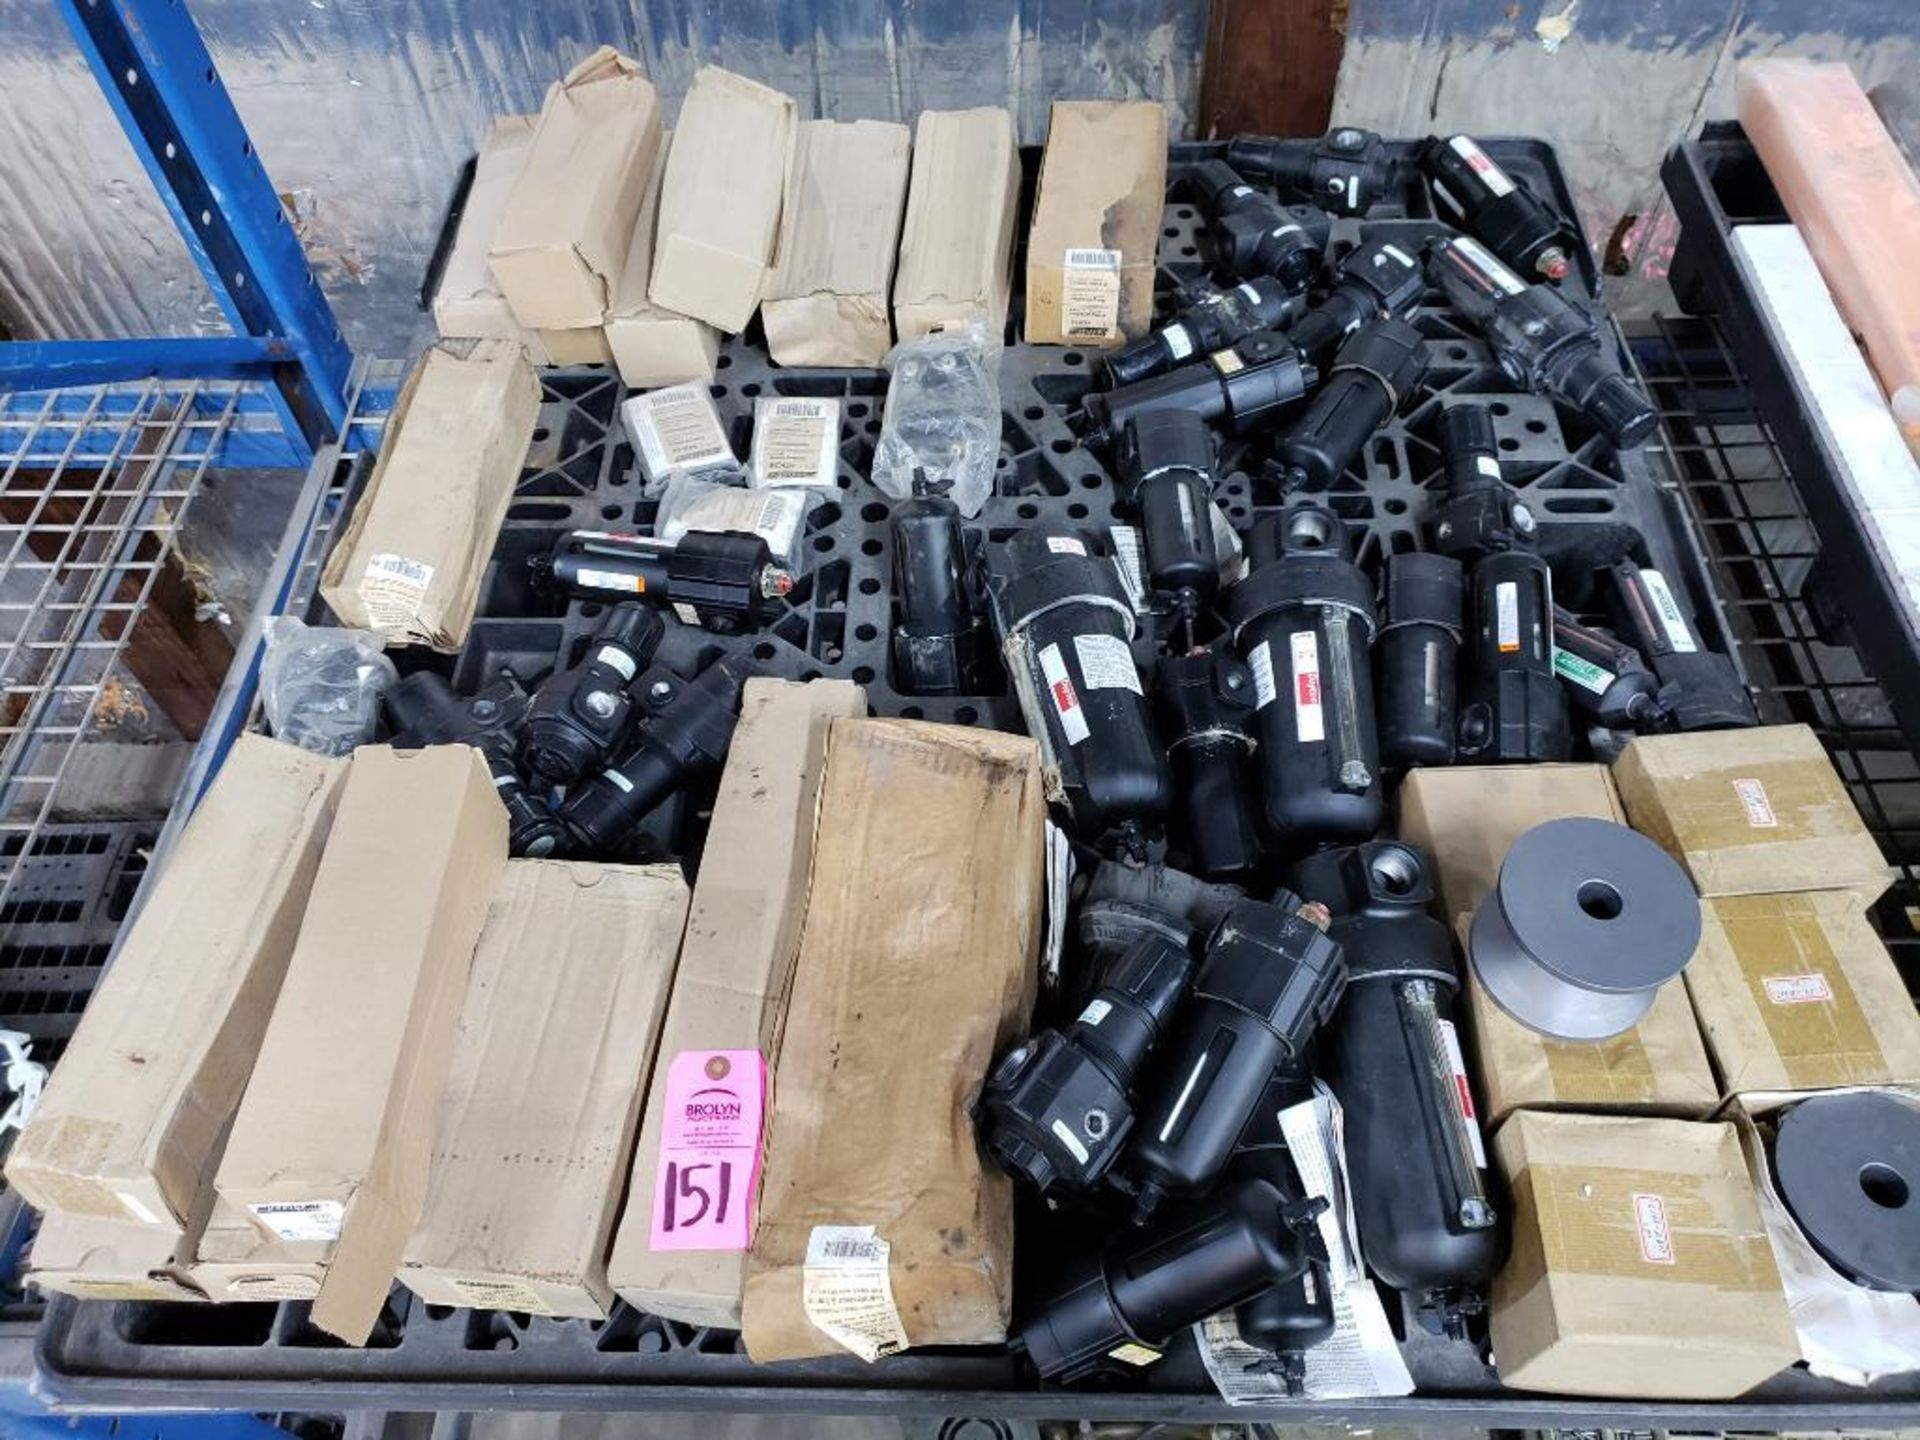 Lot 151 - Pallet of assorted pneumatic filtration and oil separator units. Most appear new, some in boxes.